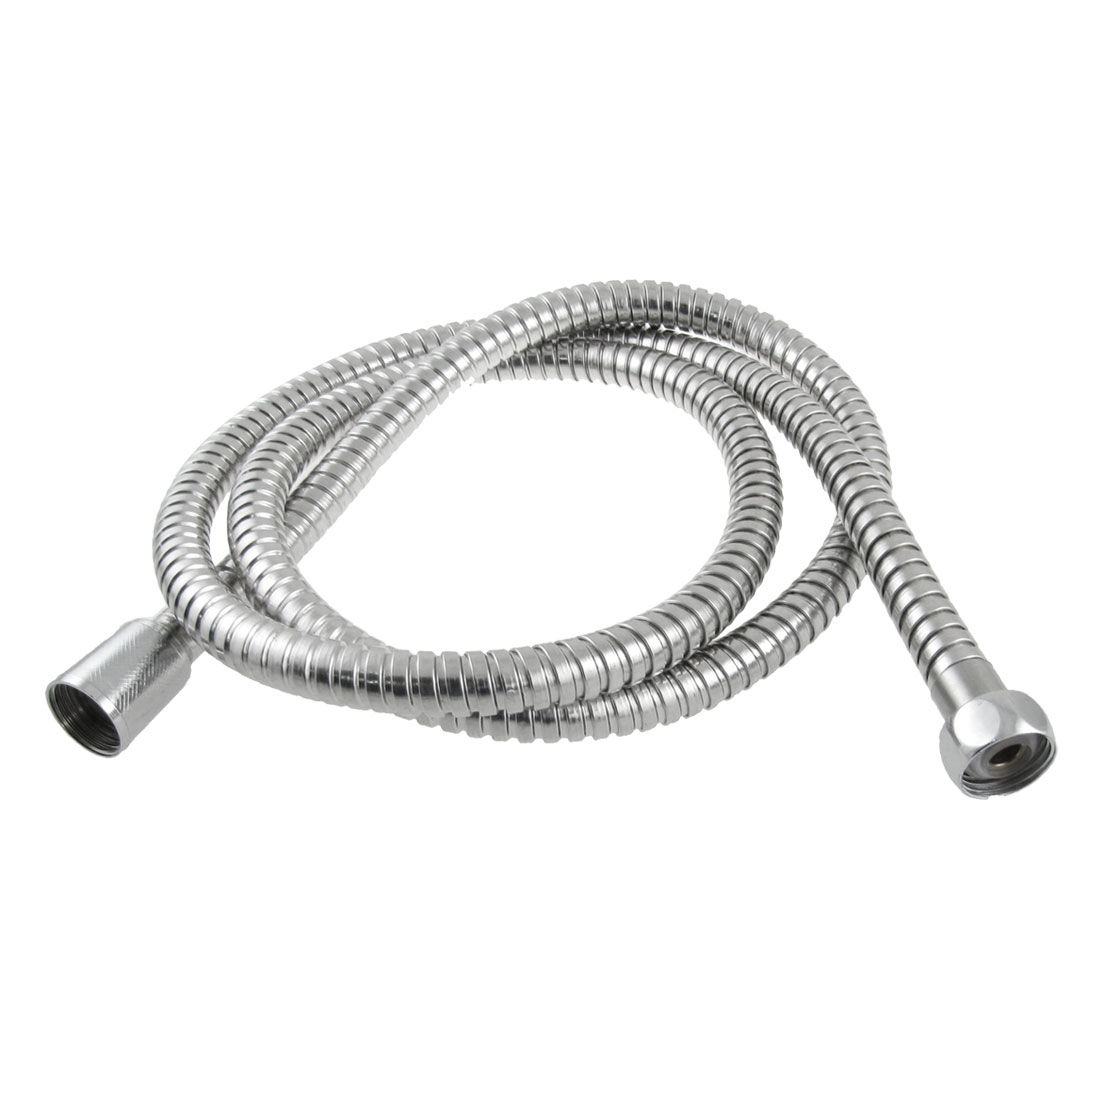 Stainless Steel Flexible Conveyance Fluids Shower Water Soft Hose Pipe 59""